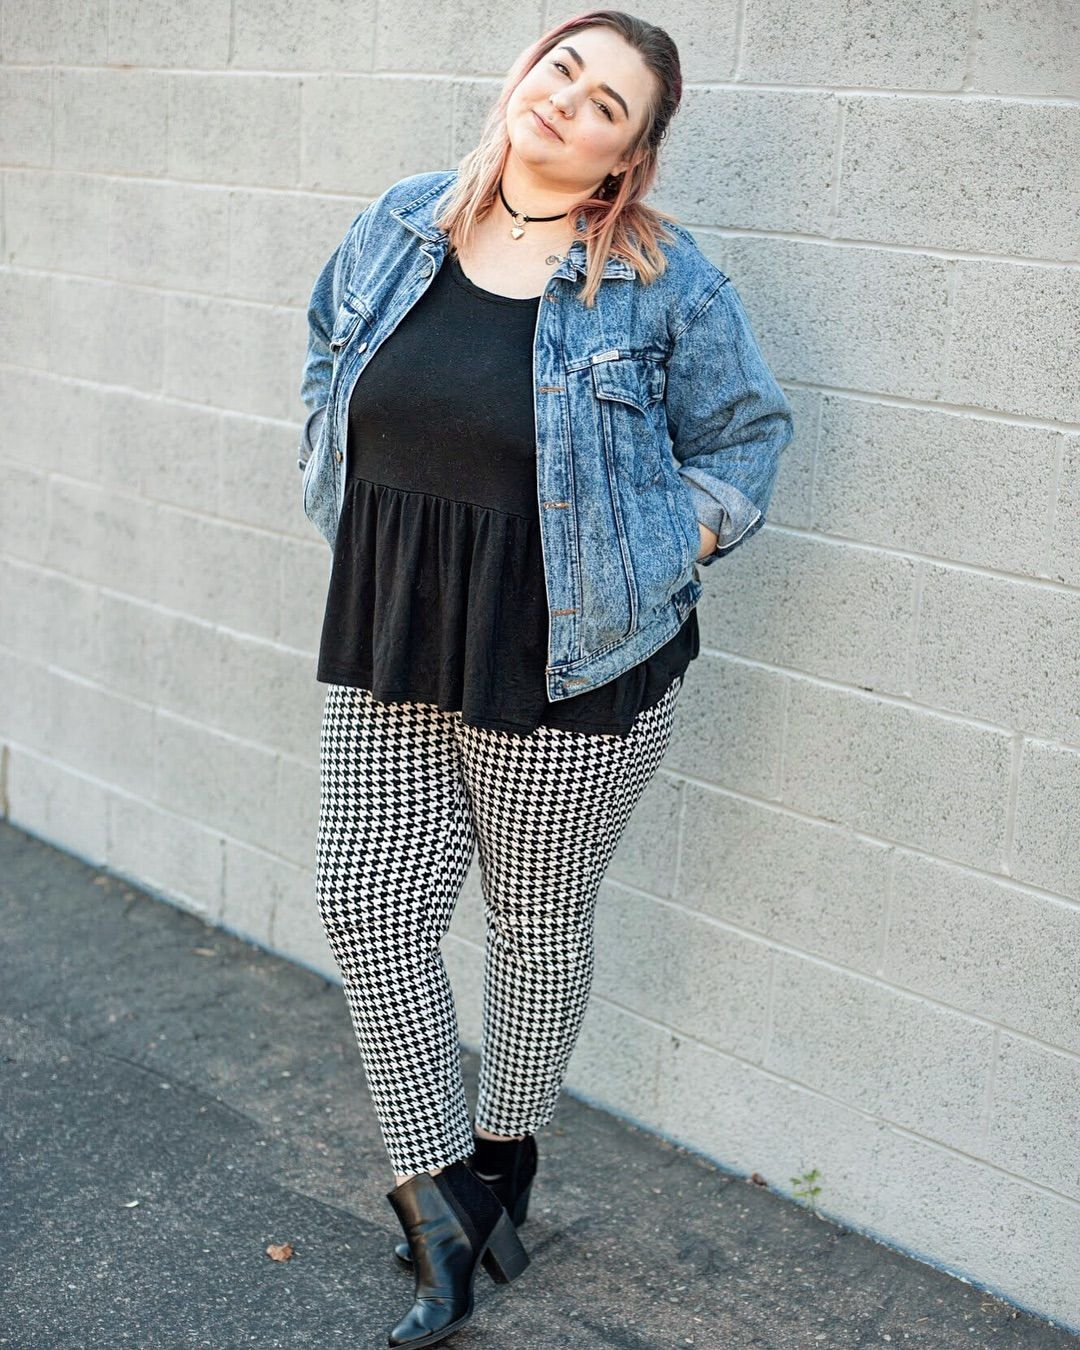 Plus Size Fashion For Women For Winter Jean Jacket Plus Size Outfit Ideas Hounds Tooth Print Plus Size Fashion Plus Size Fashion For Women Plus Size Outfits [ 1350 x 1080 Pixel ]